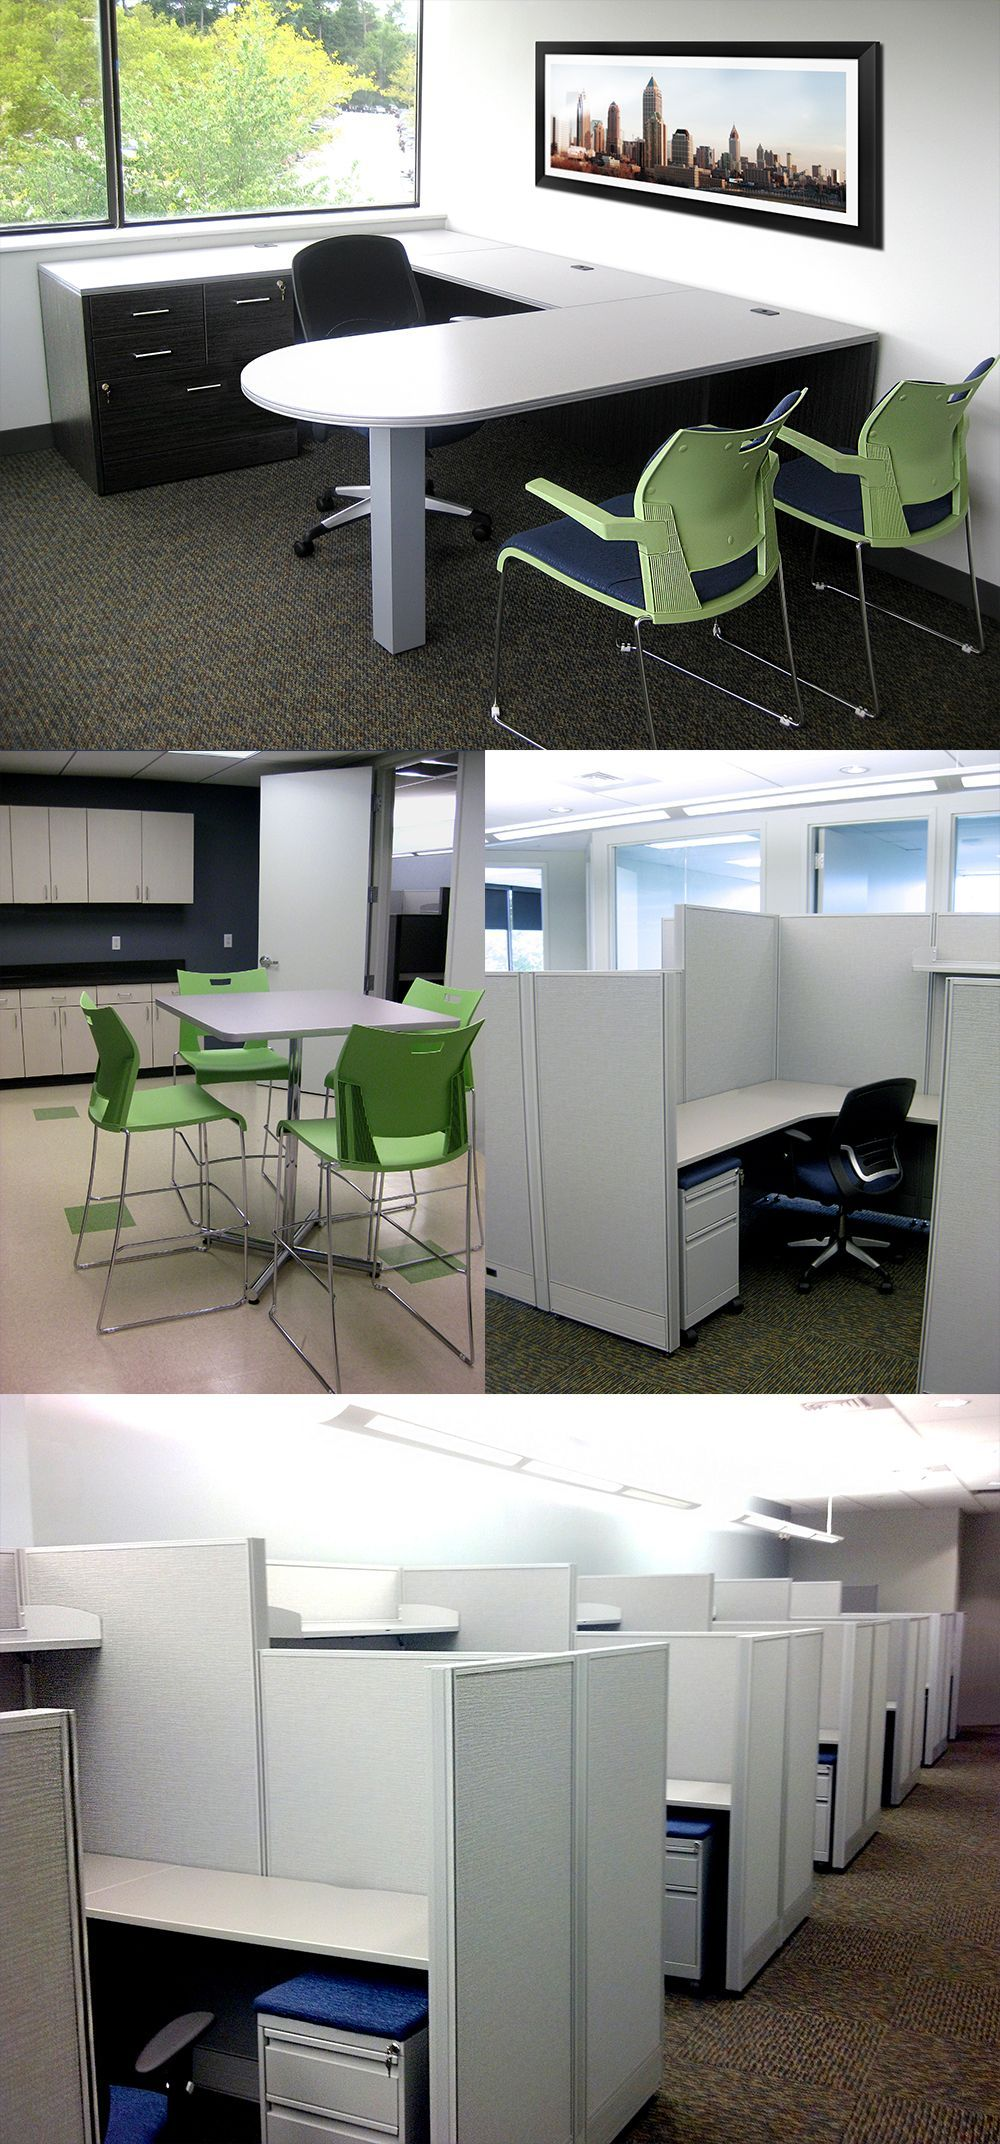 Office Room Design Software: A Software Engineering Company Was Moving To A Larger